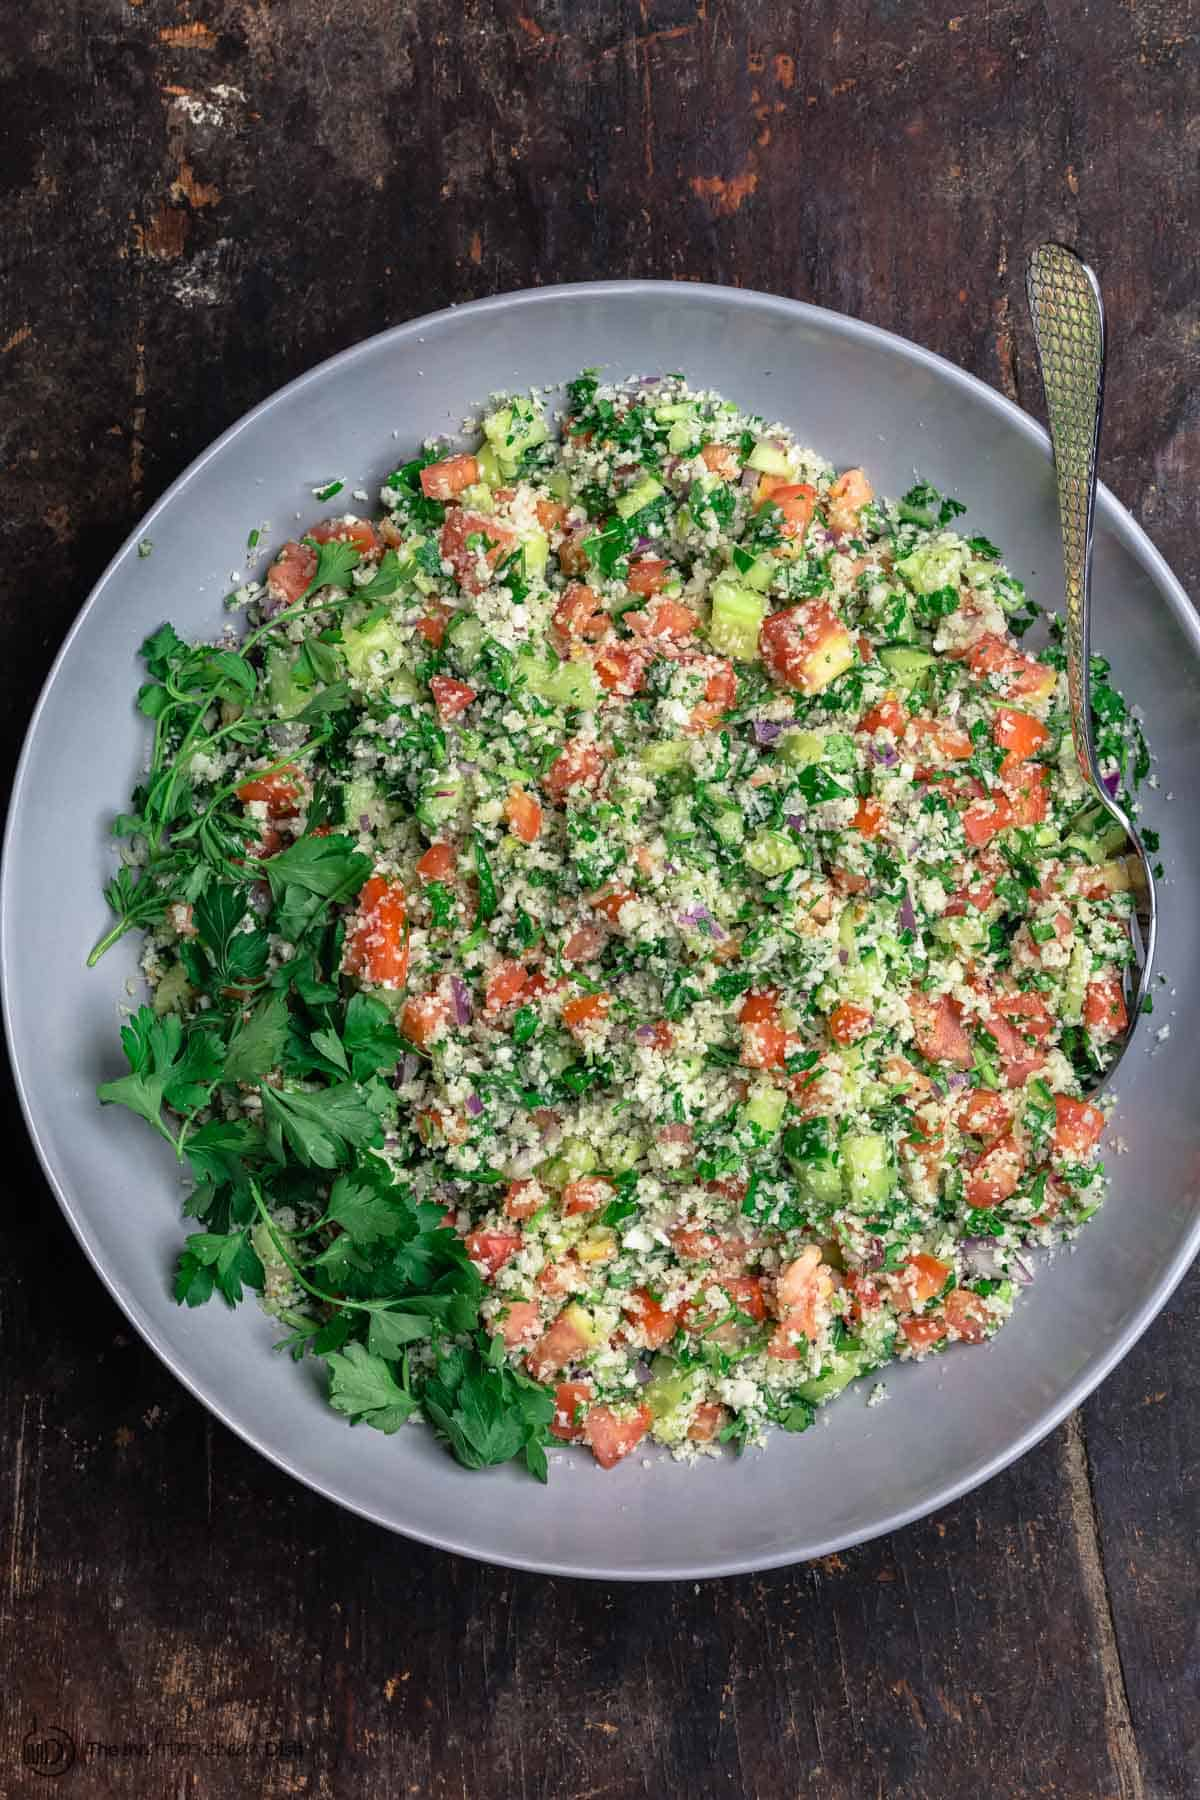 Mediterranean cauliflower salad with tomatoes, cucumbers, parsley and red onions, served in a large bowl